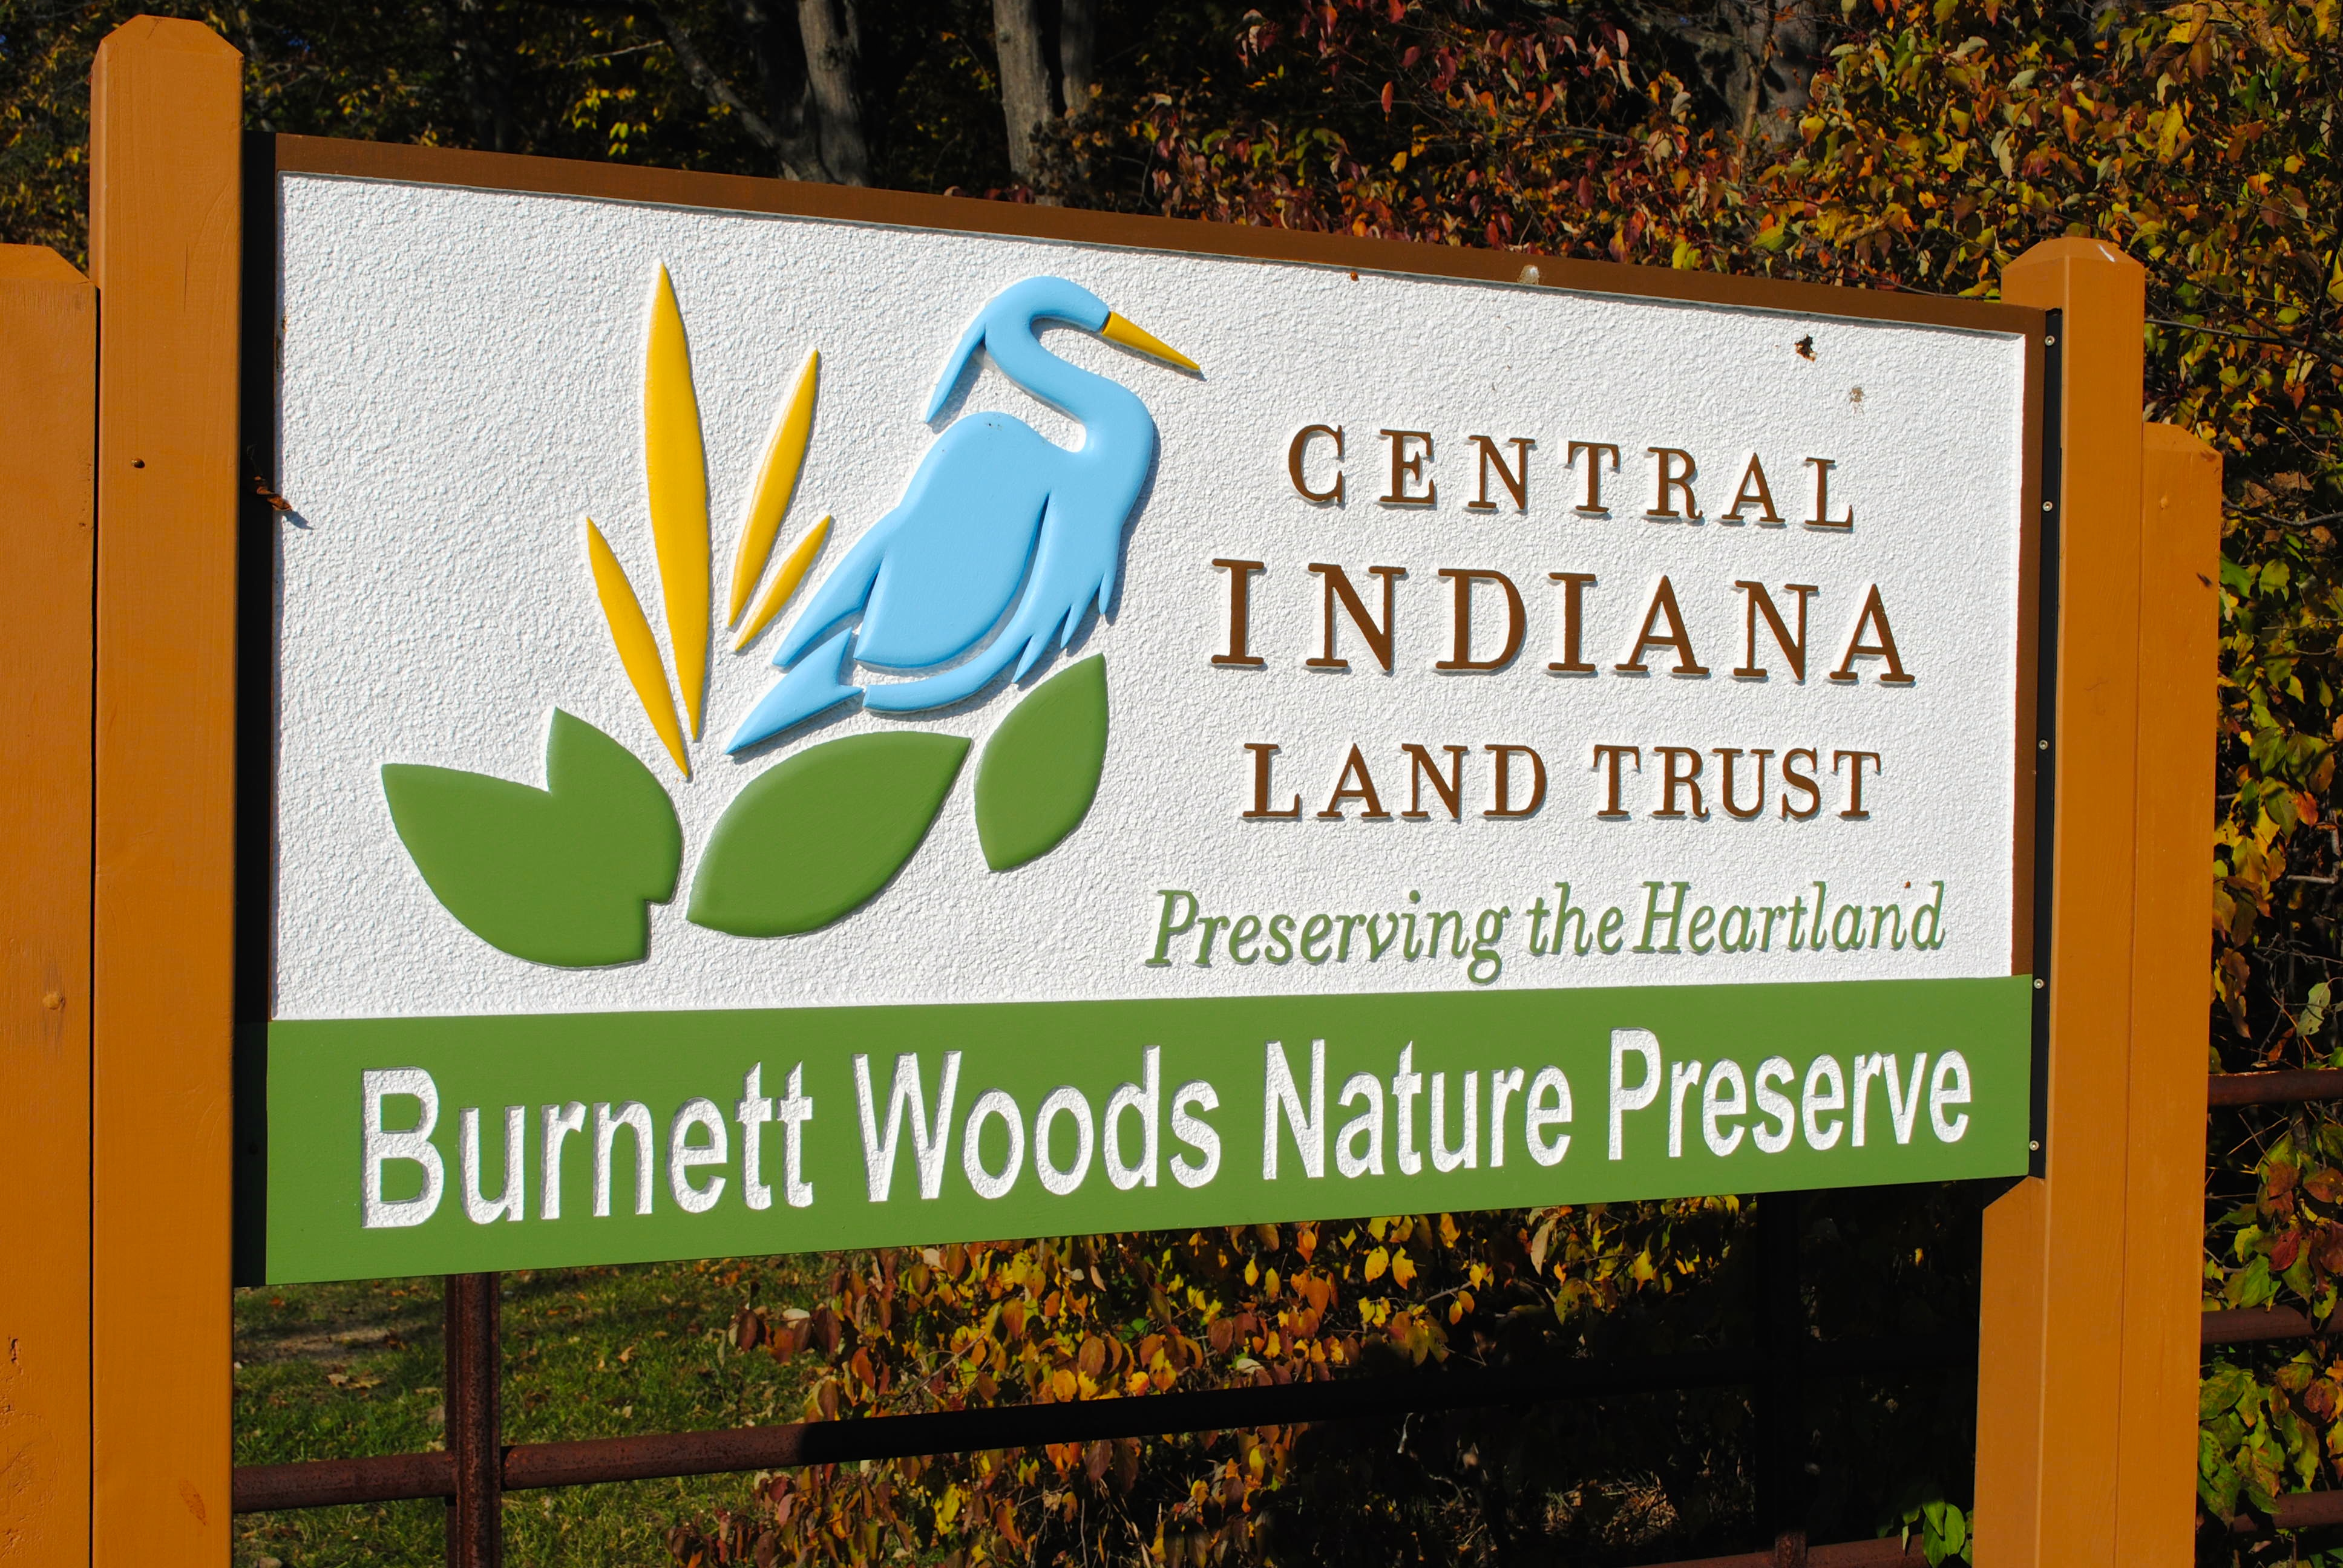 Burnett Woods Nature Preserve in Avon, Indiana